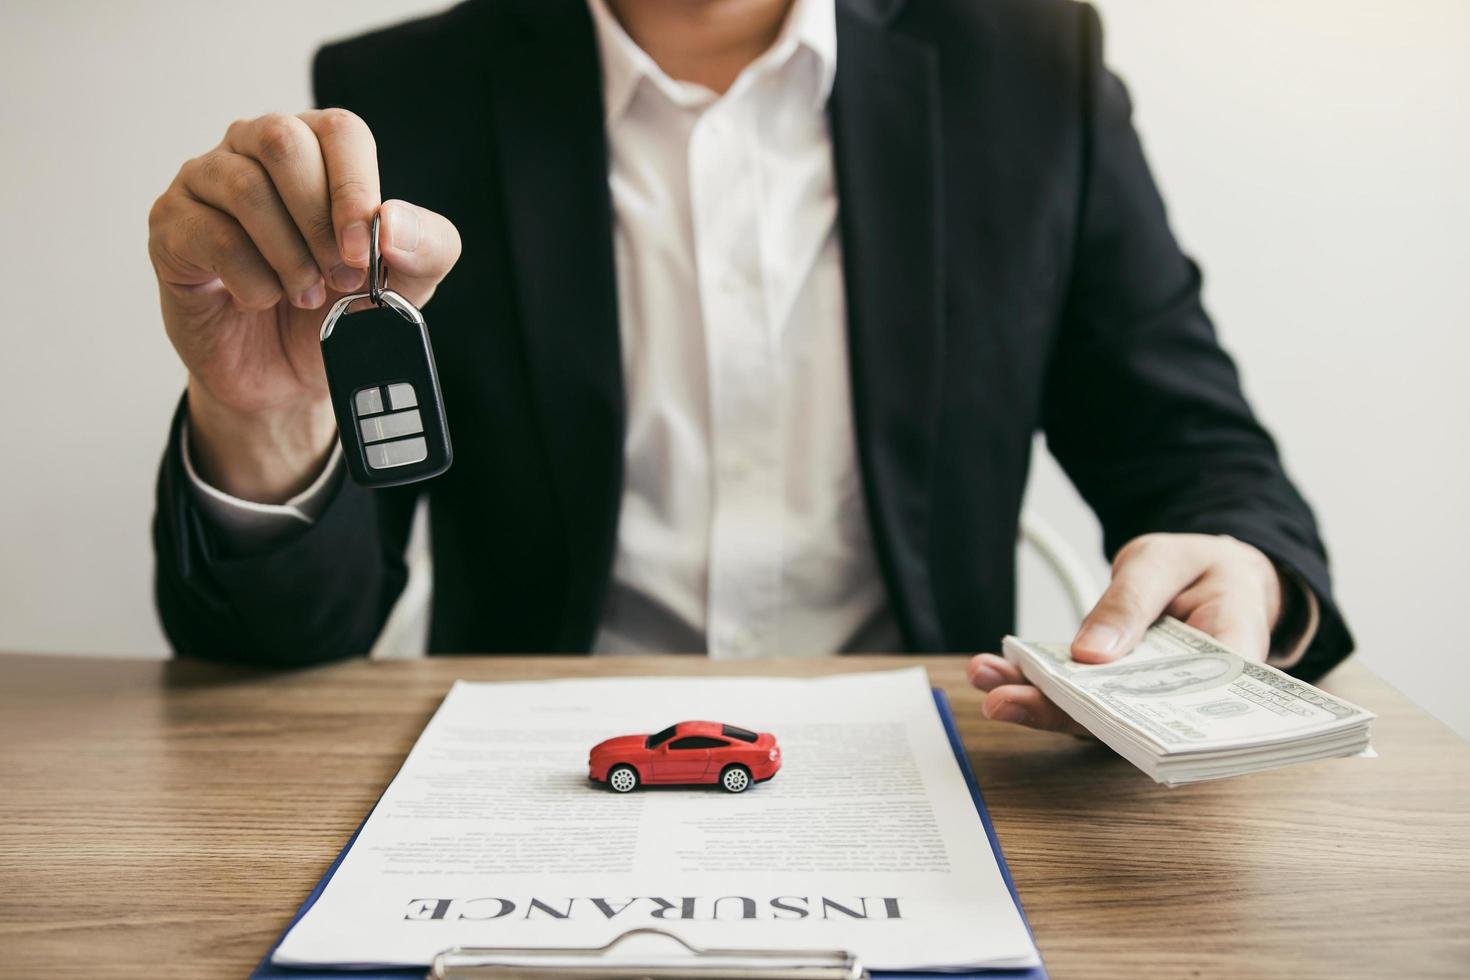 Car salesman handing keys and money to client photo